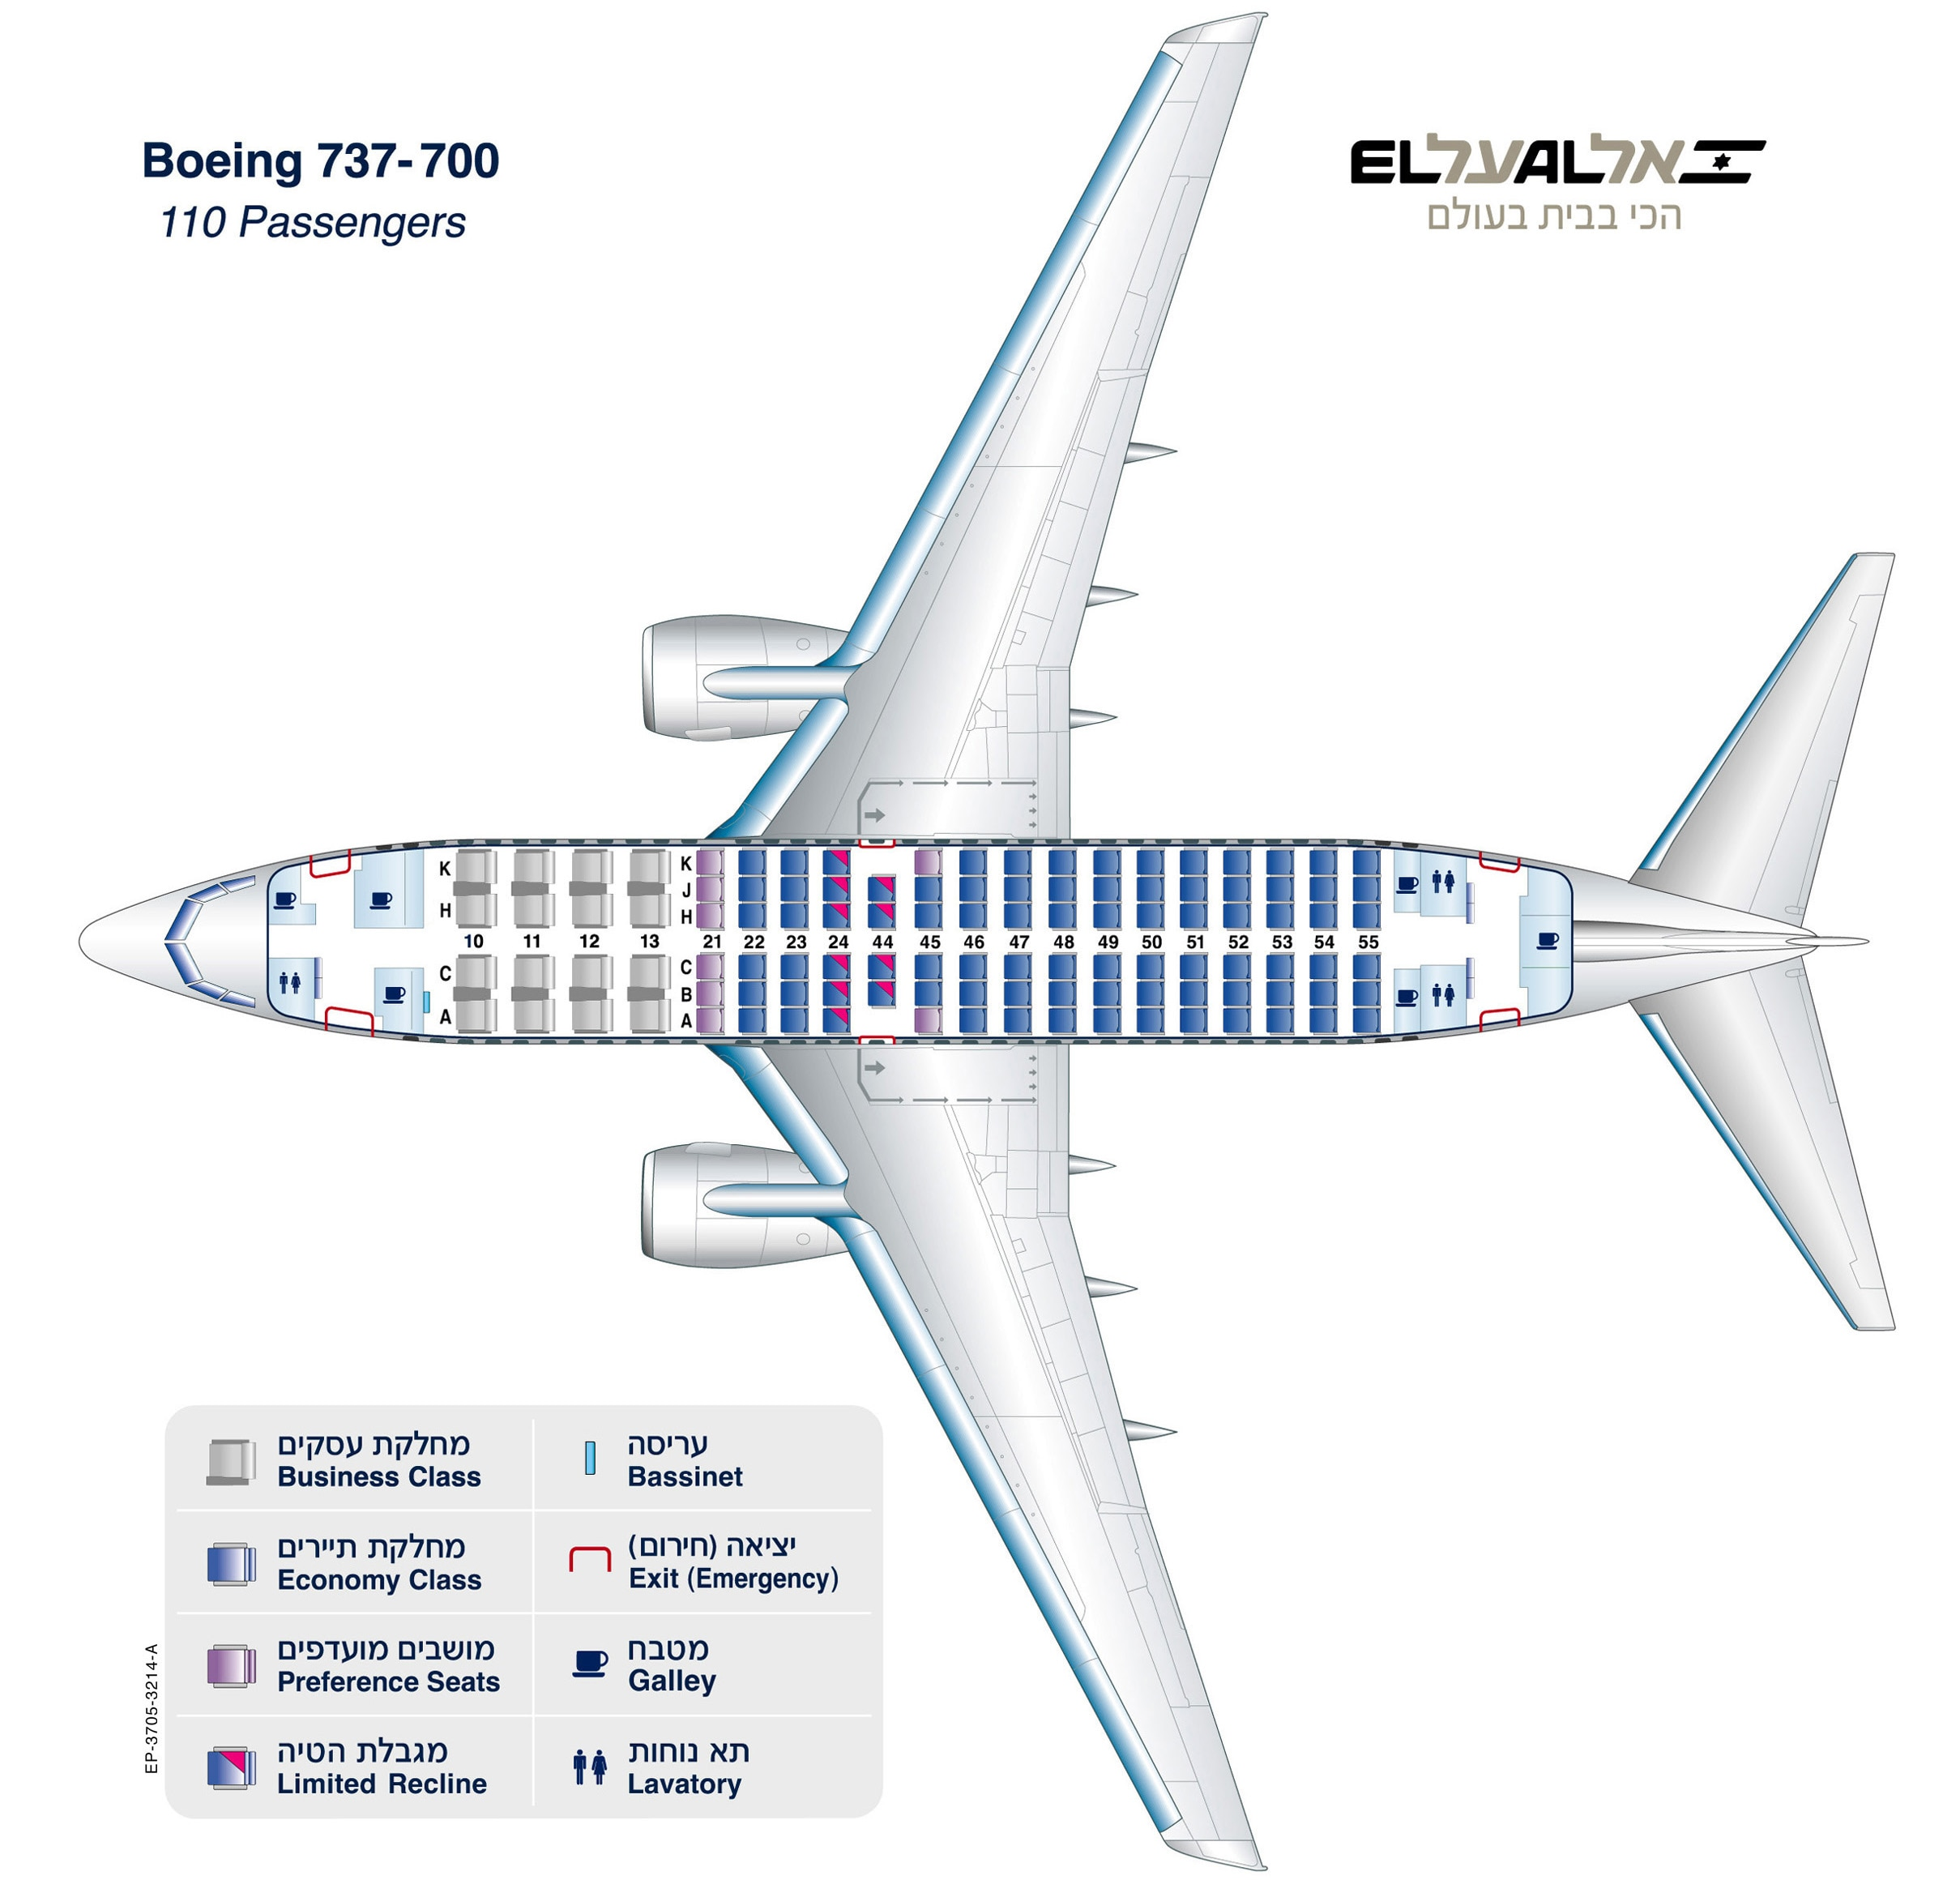 For the seating chart of Boeing 737 700 click here